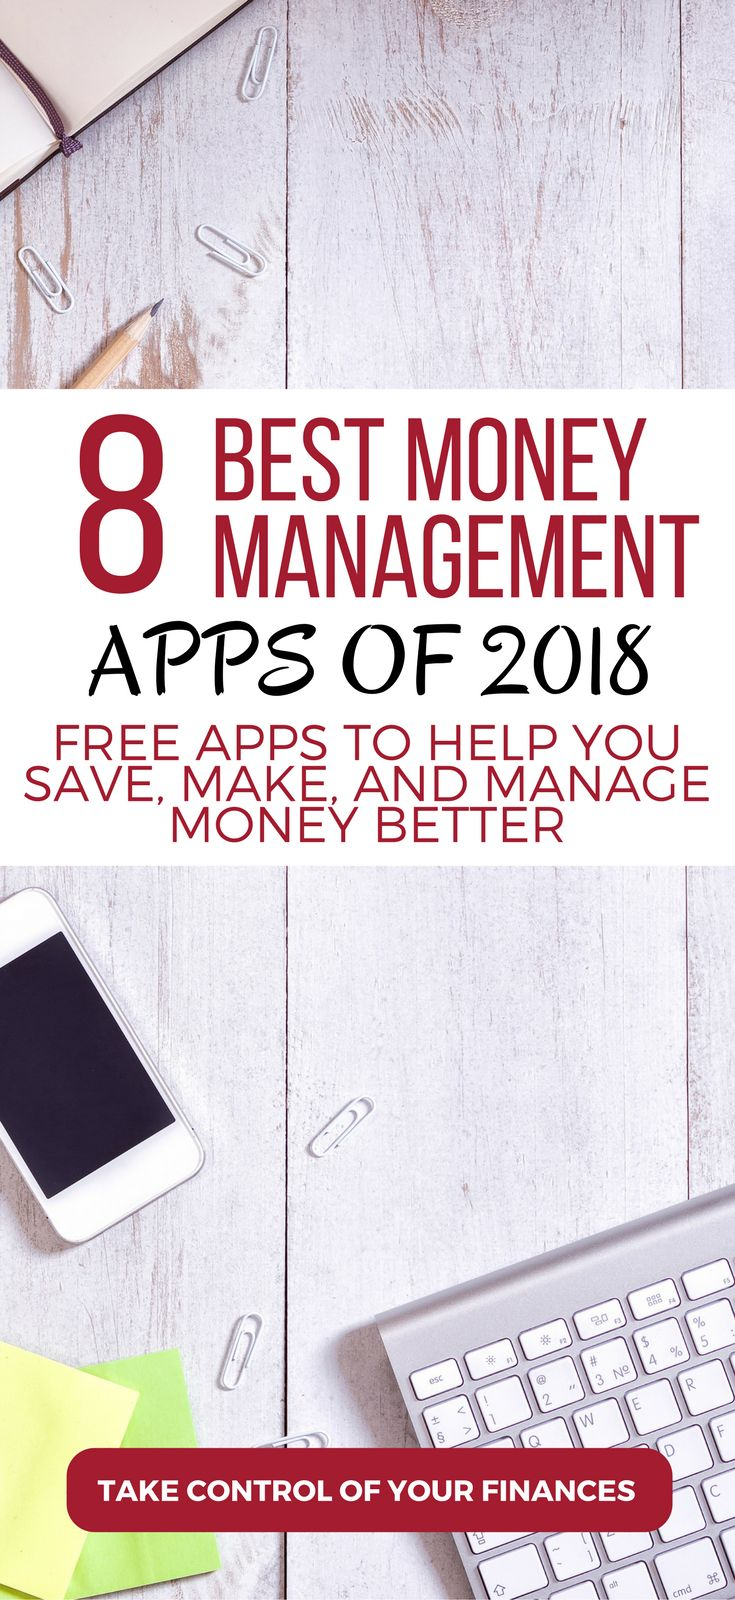 Looking for better ways to save and manage your money? These are the 8 best money management apps that will help you take control of your finances.     money apps | budgeting apps | make money apps | save money apps | apps for saving money | grocery store apps | cash back apps    #money #family #apps  via @https://www.pinterest.com/thewaystowealth/